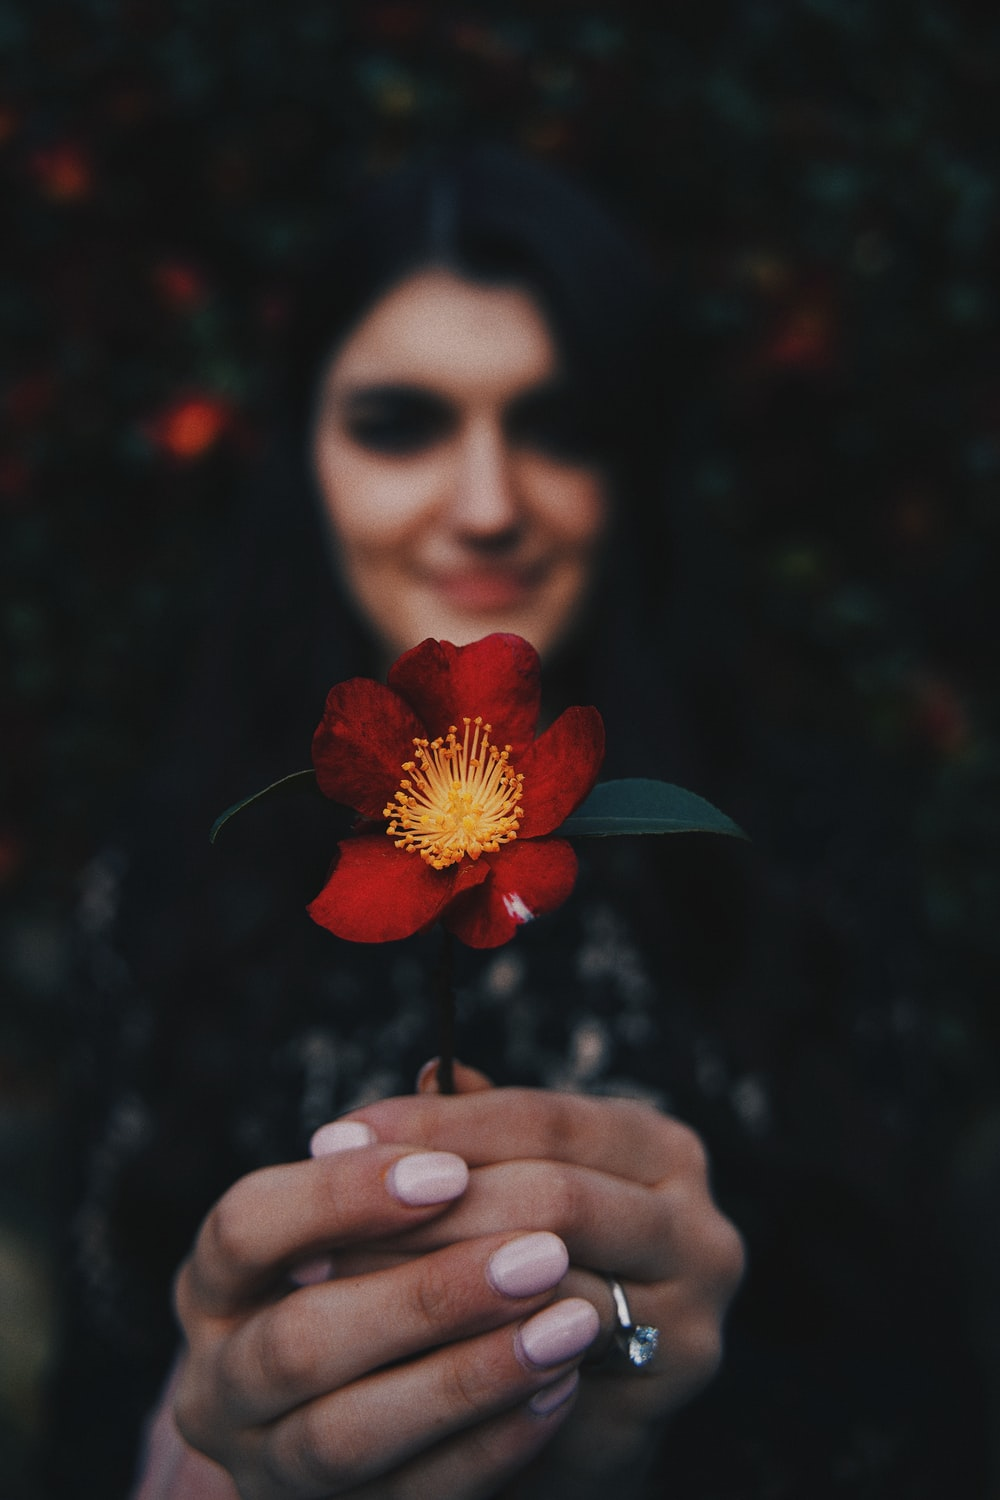 woman holding red flower in close up photography